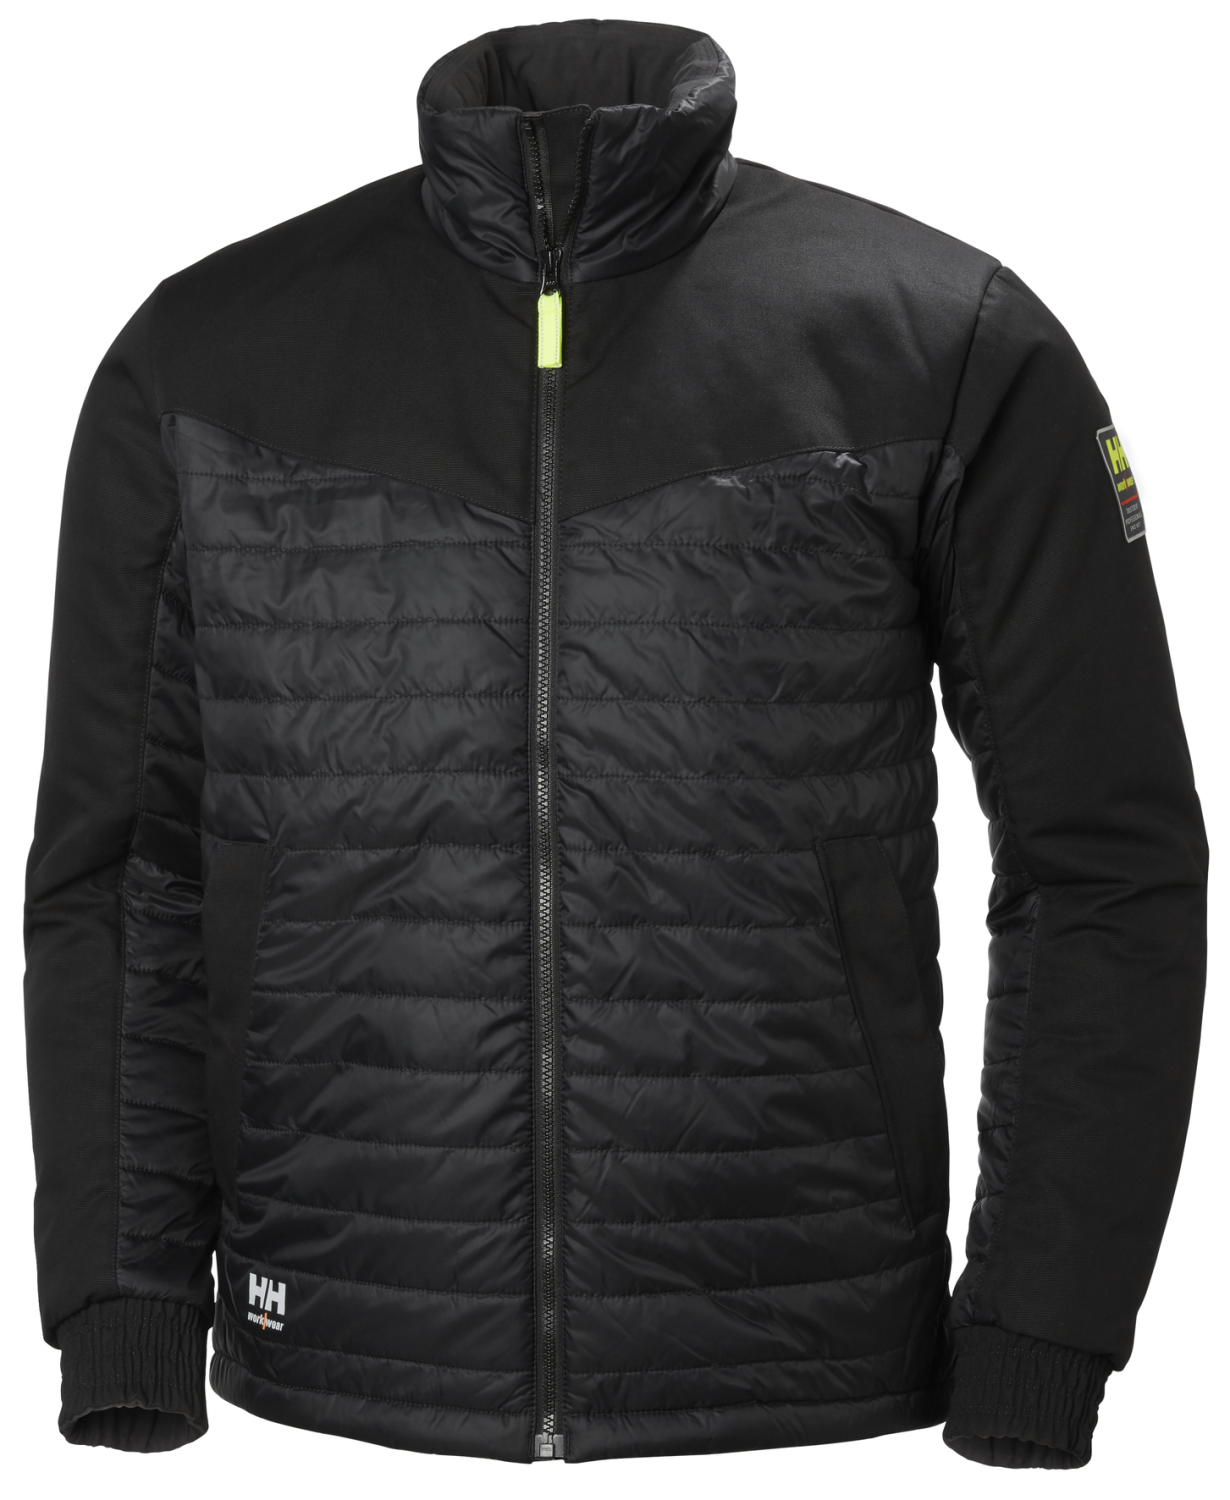 OXFORD INSULATED JACKET